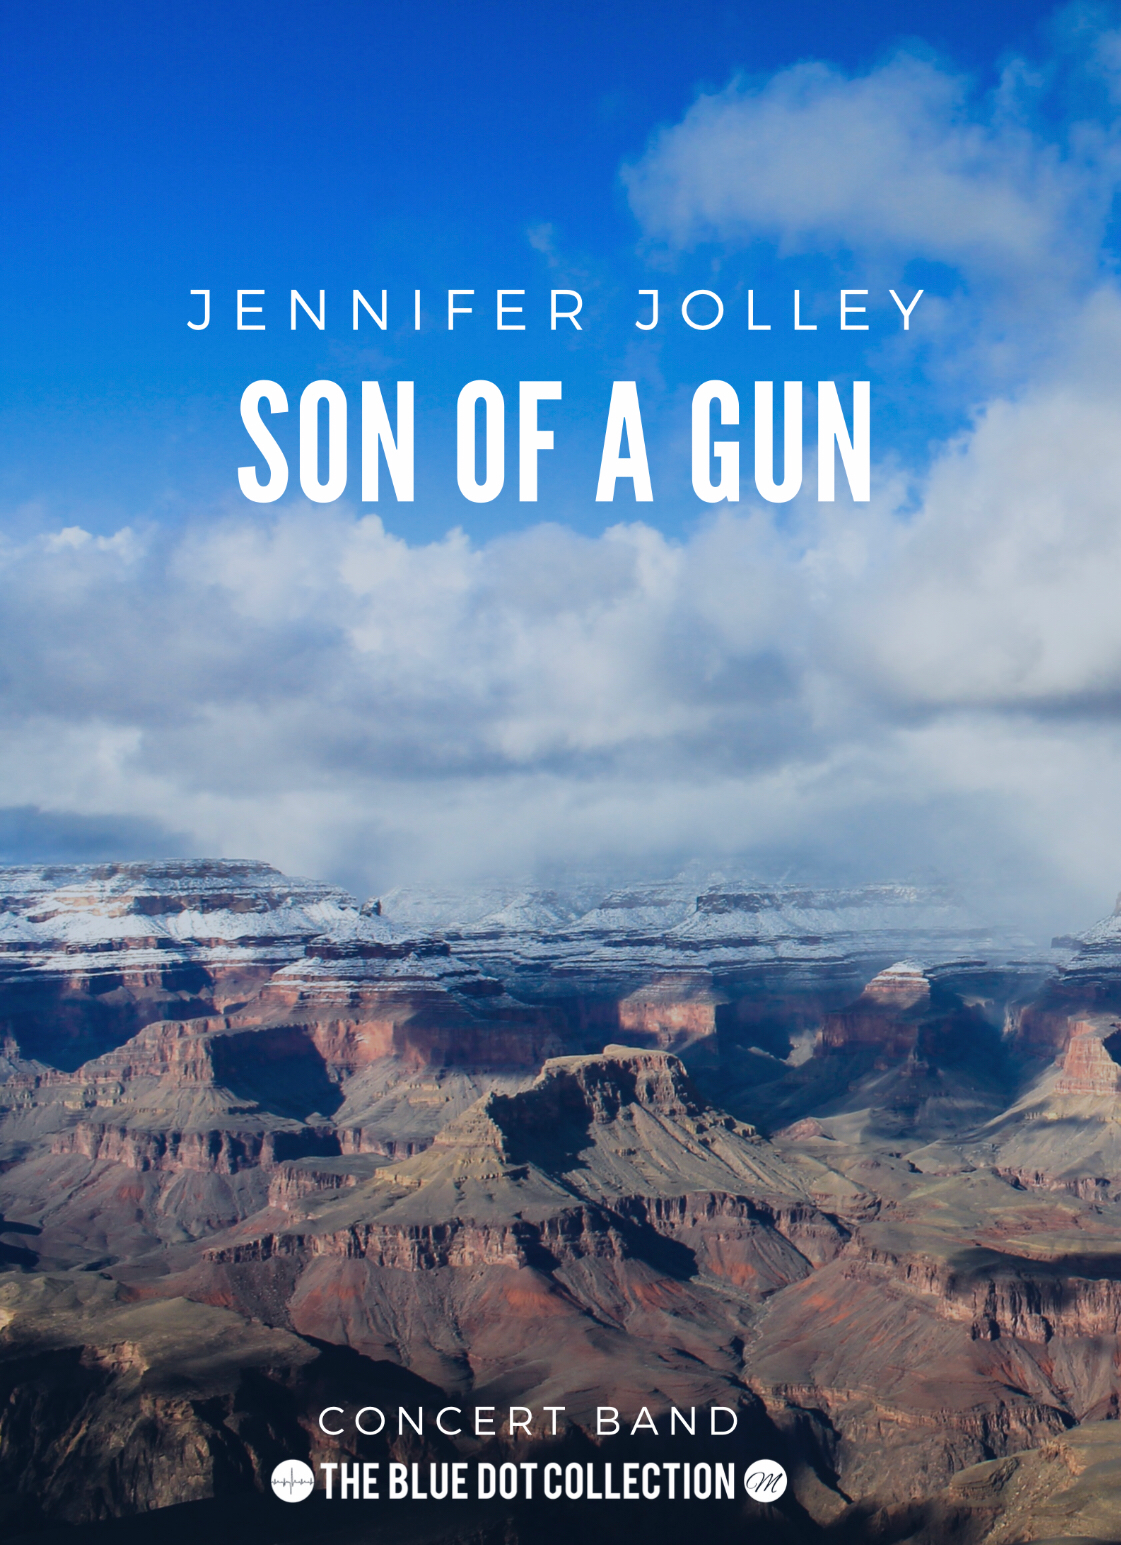 Son Of A Gun by Jennifer Jolley